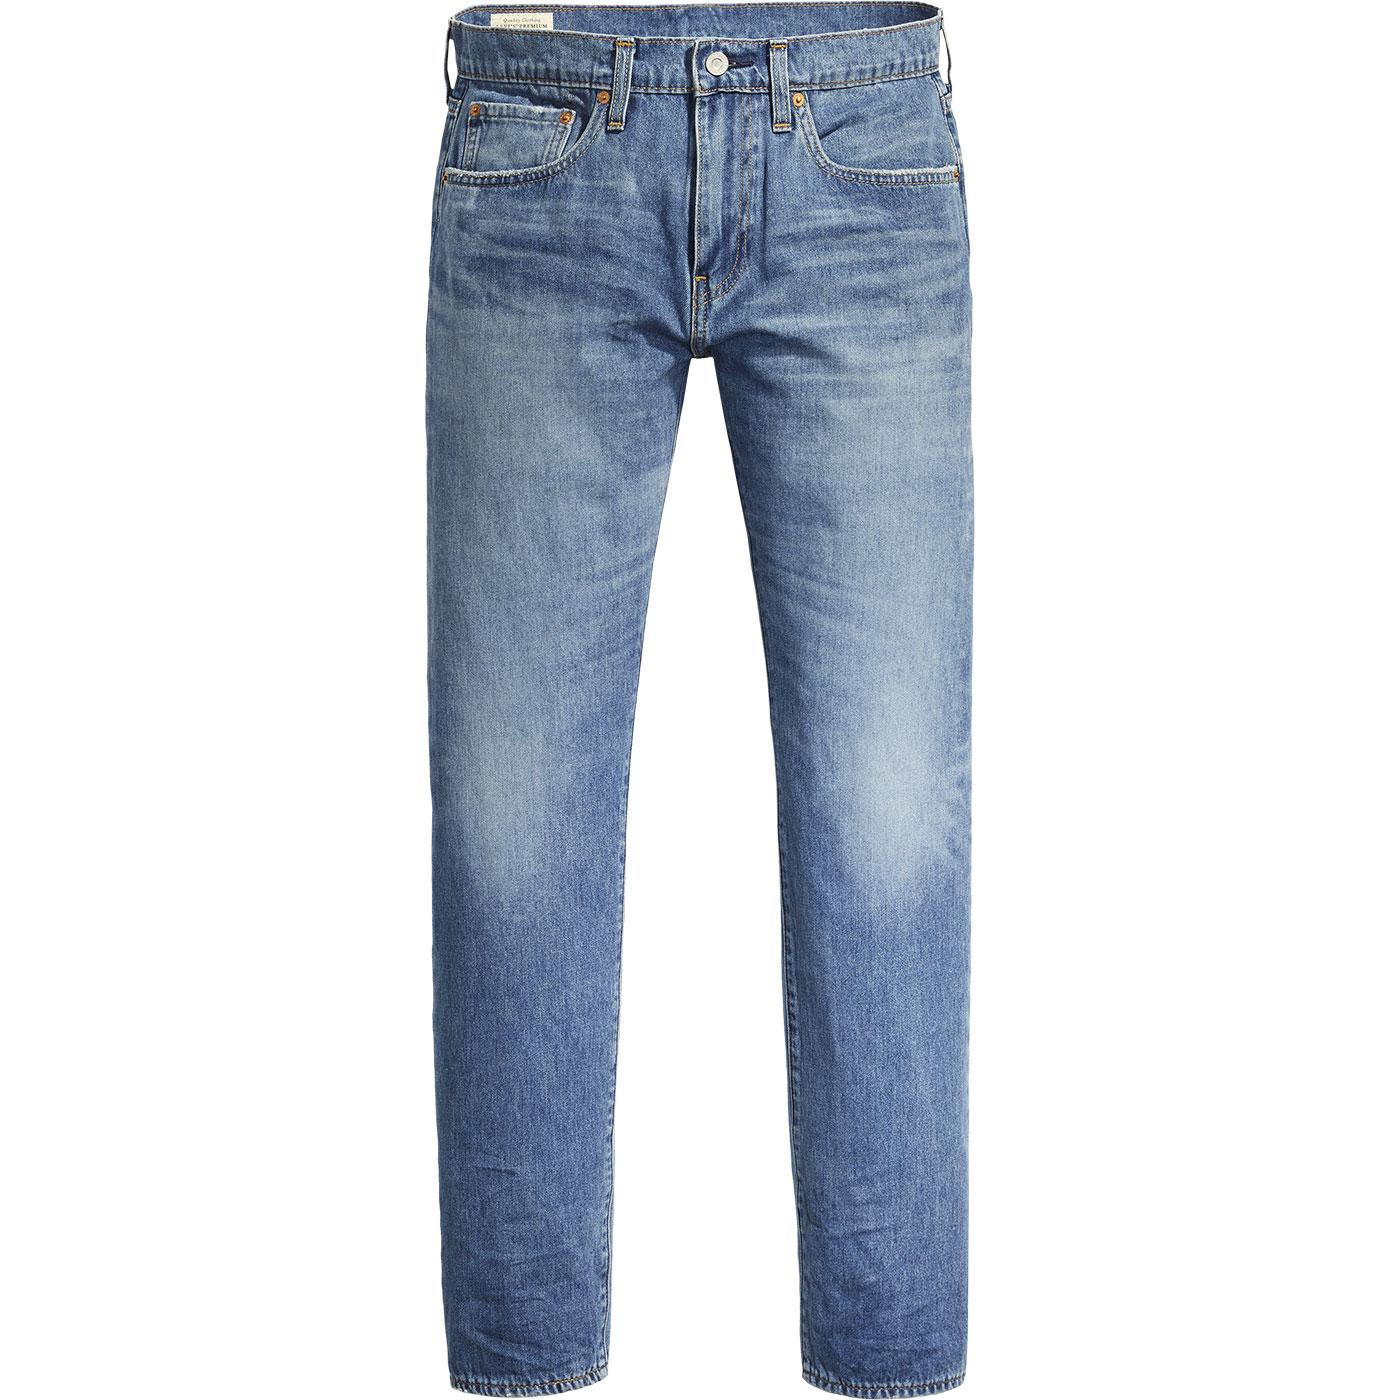 LEVI'S 502 Taper Fit Stretch Jeans (Ocala Park)